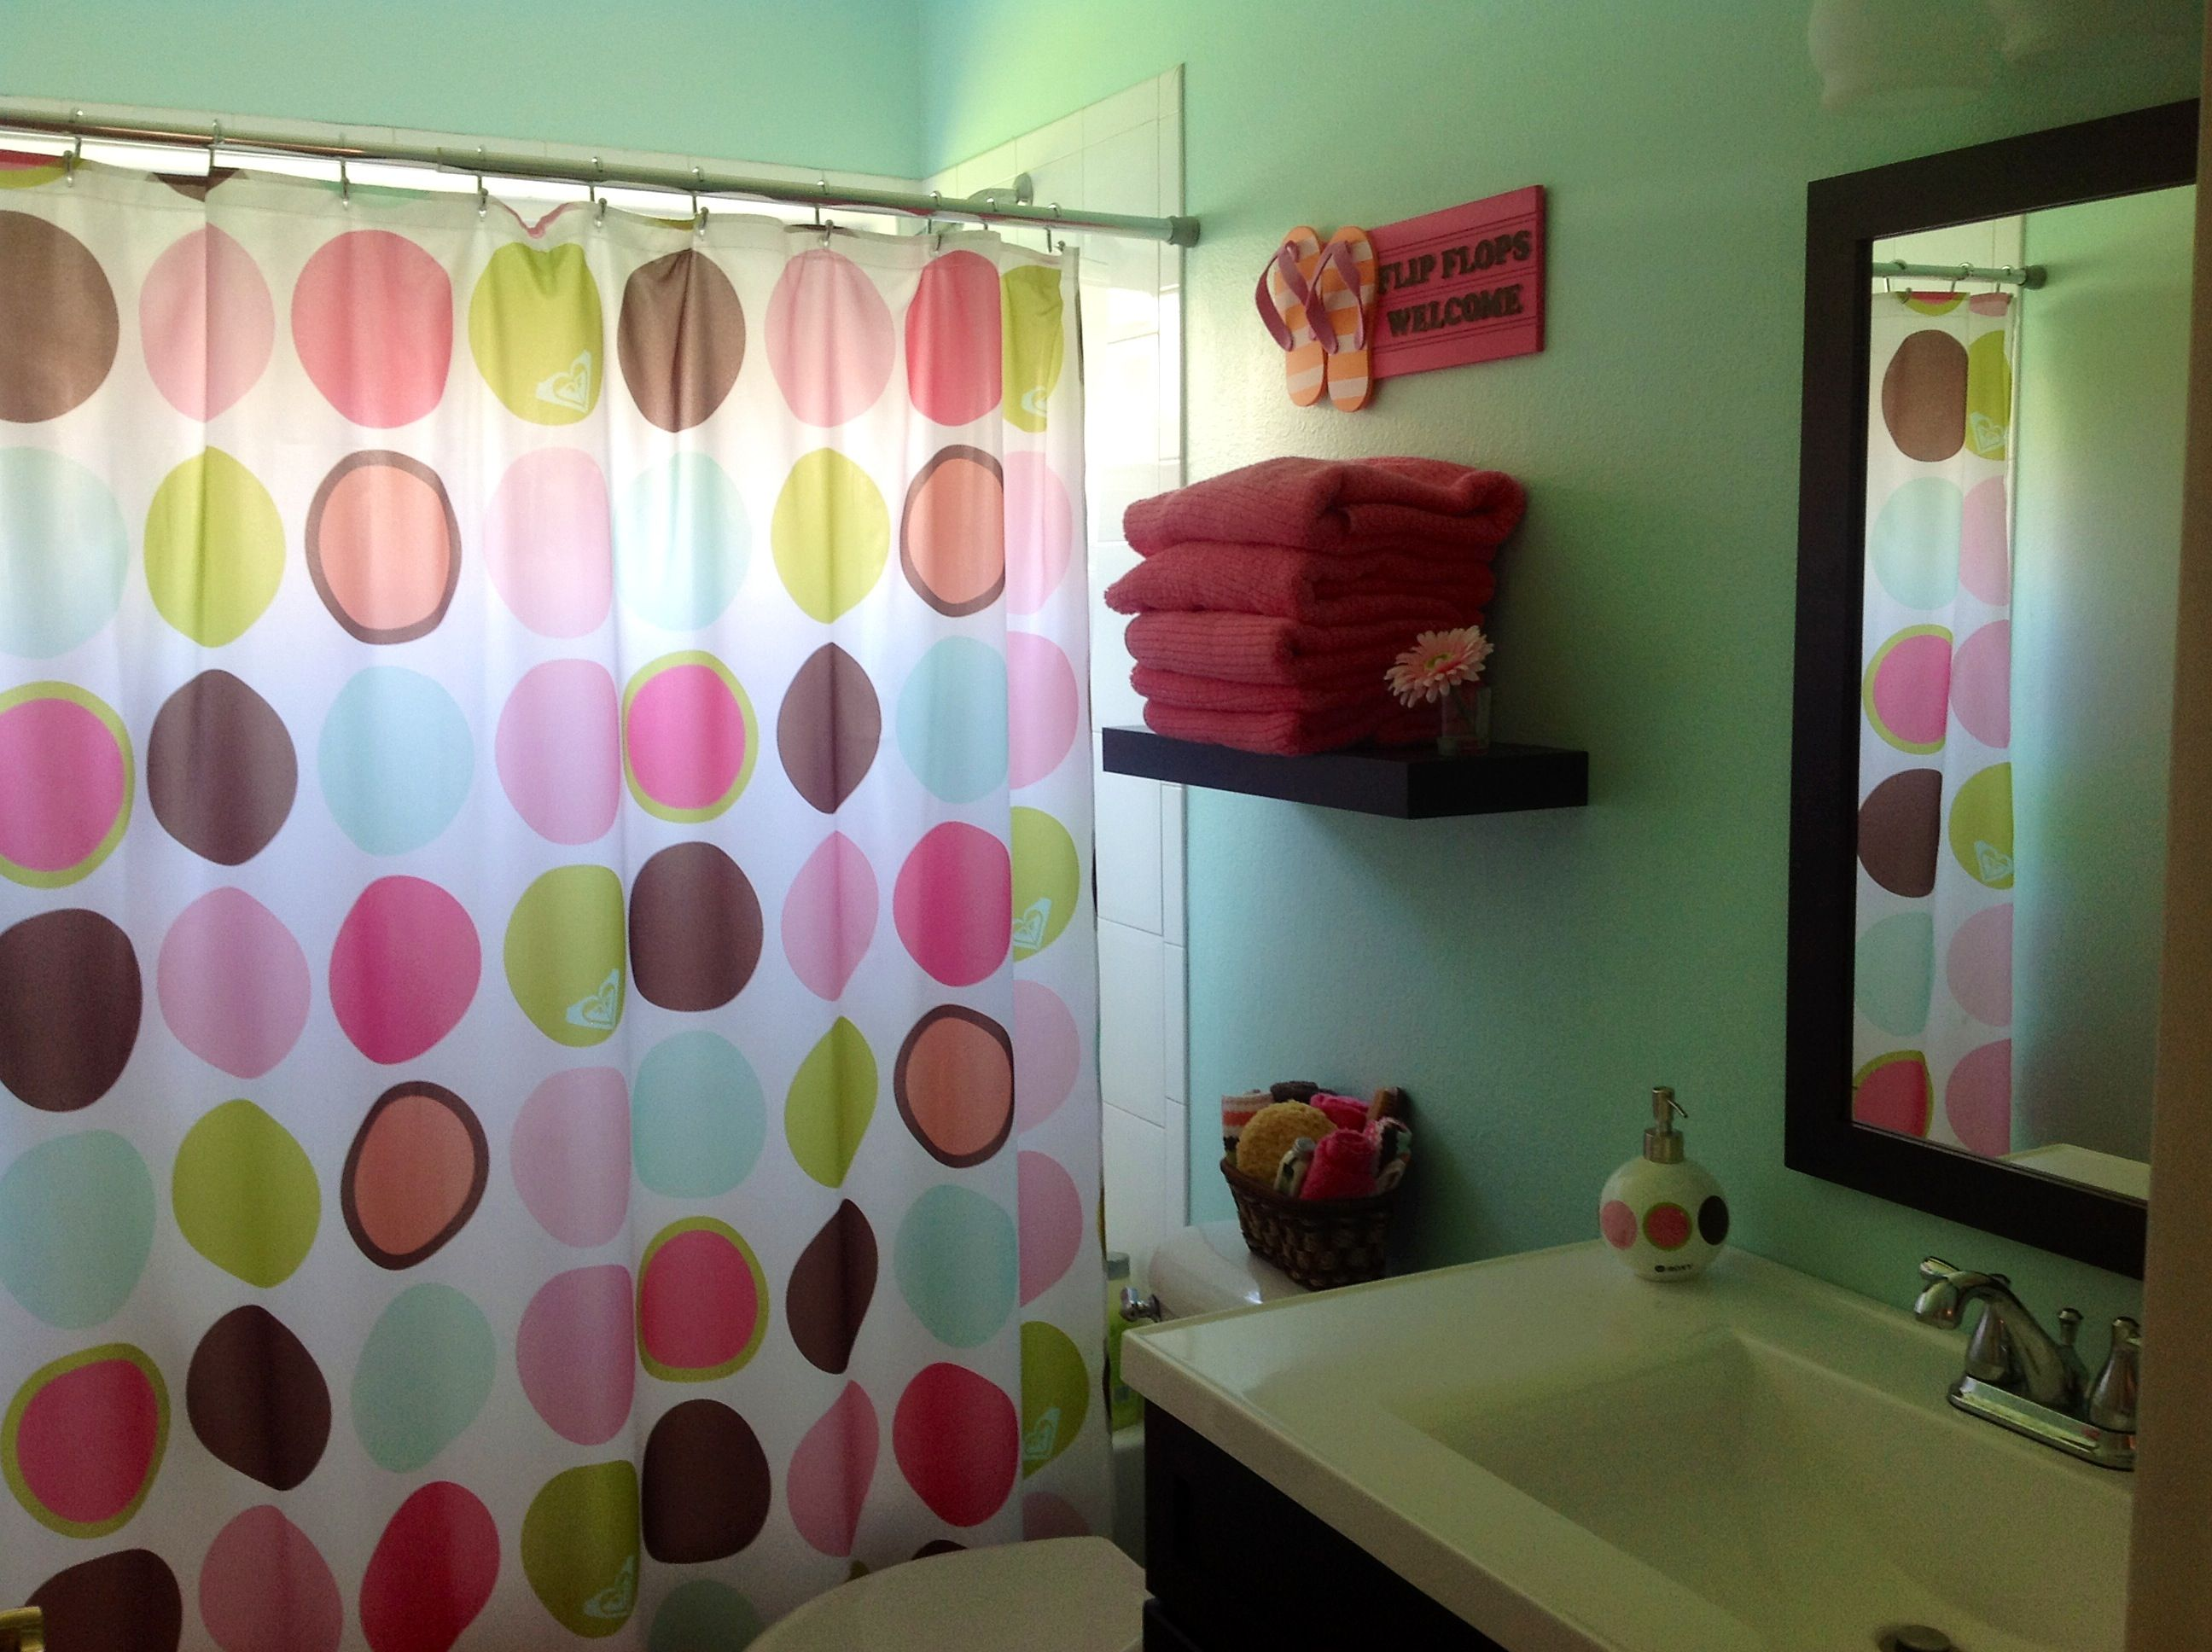 1000 Images About Girls 39 Bathroom On Pinterest Double Sinks Towels And Green Towels 1000